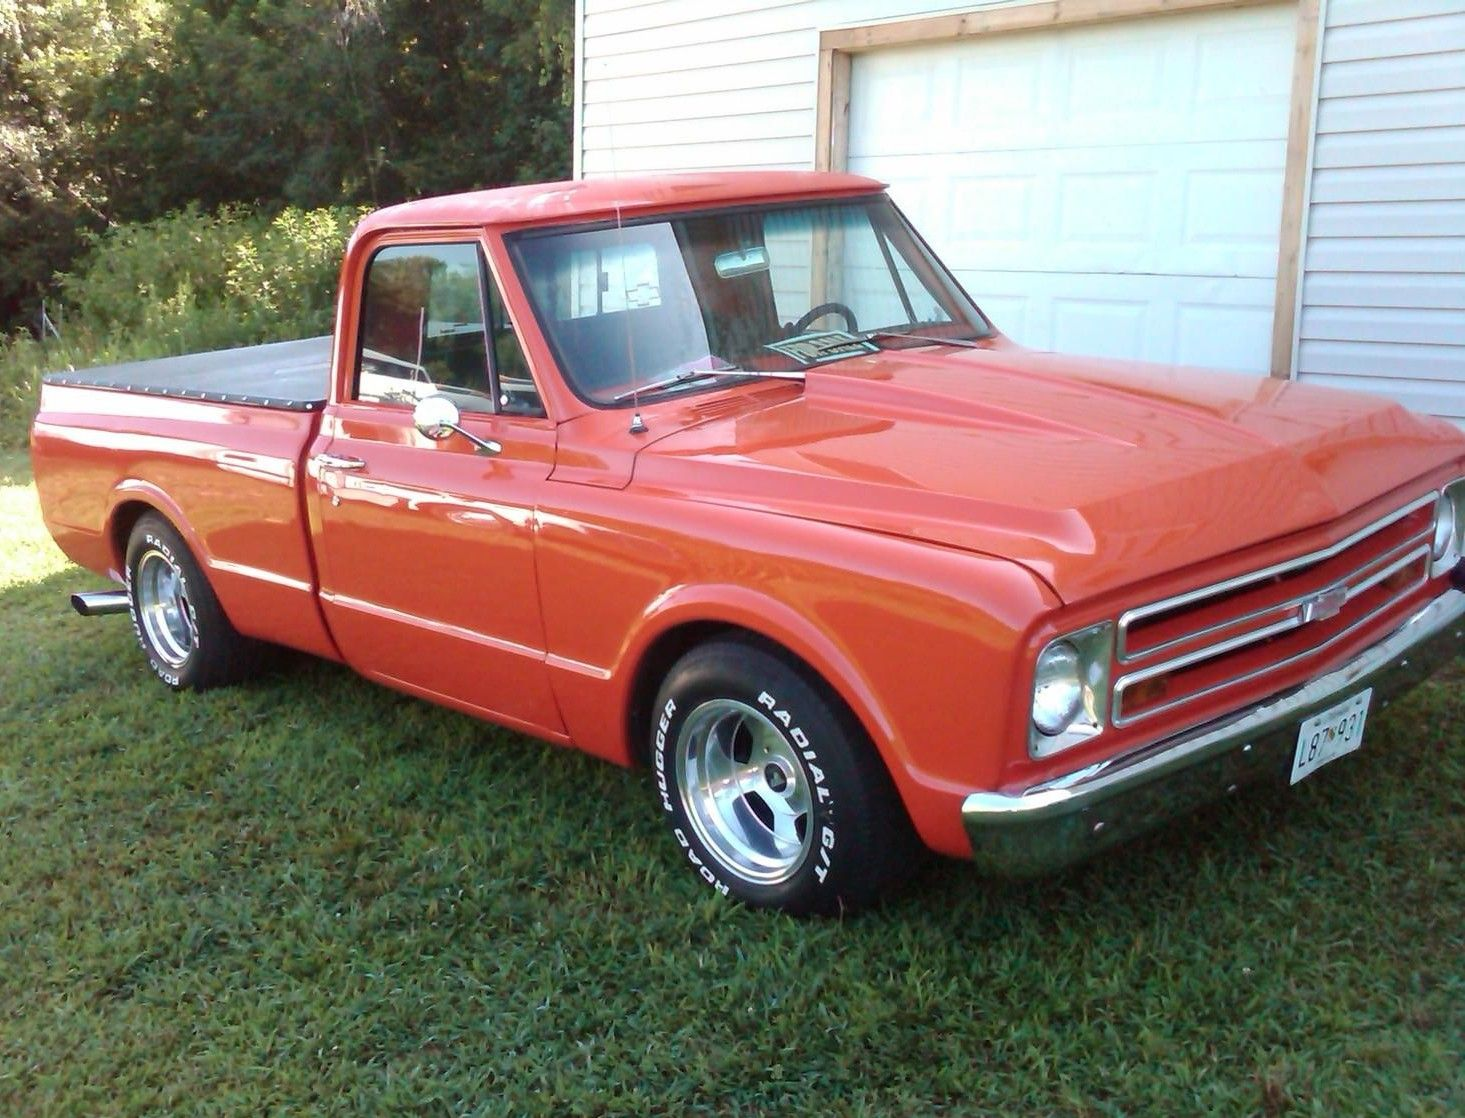 1967 Chevy 1 2 Ton Was My 1st Car Truck Auto Moto Chevy